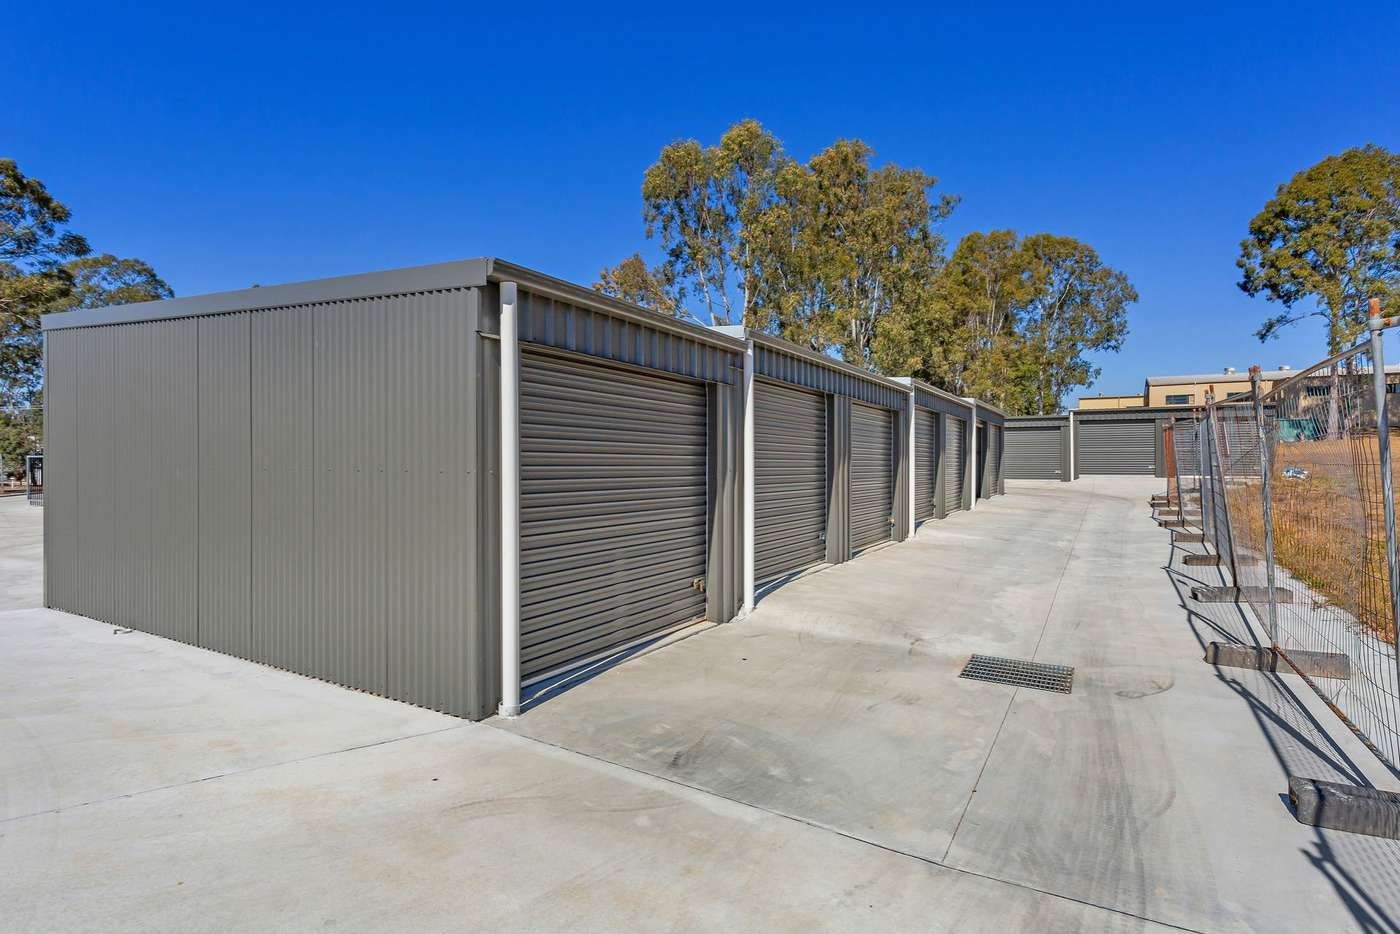 Sixth view of Homely house listing, 6 Industrial Close, Wingham NSW 2429